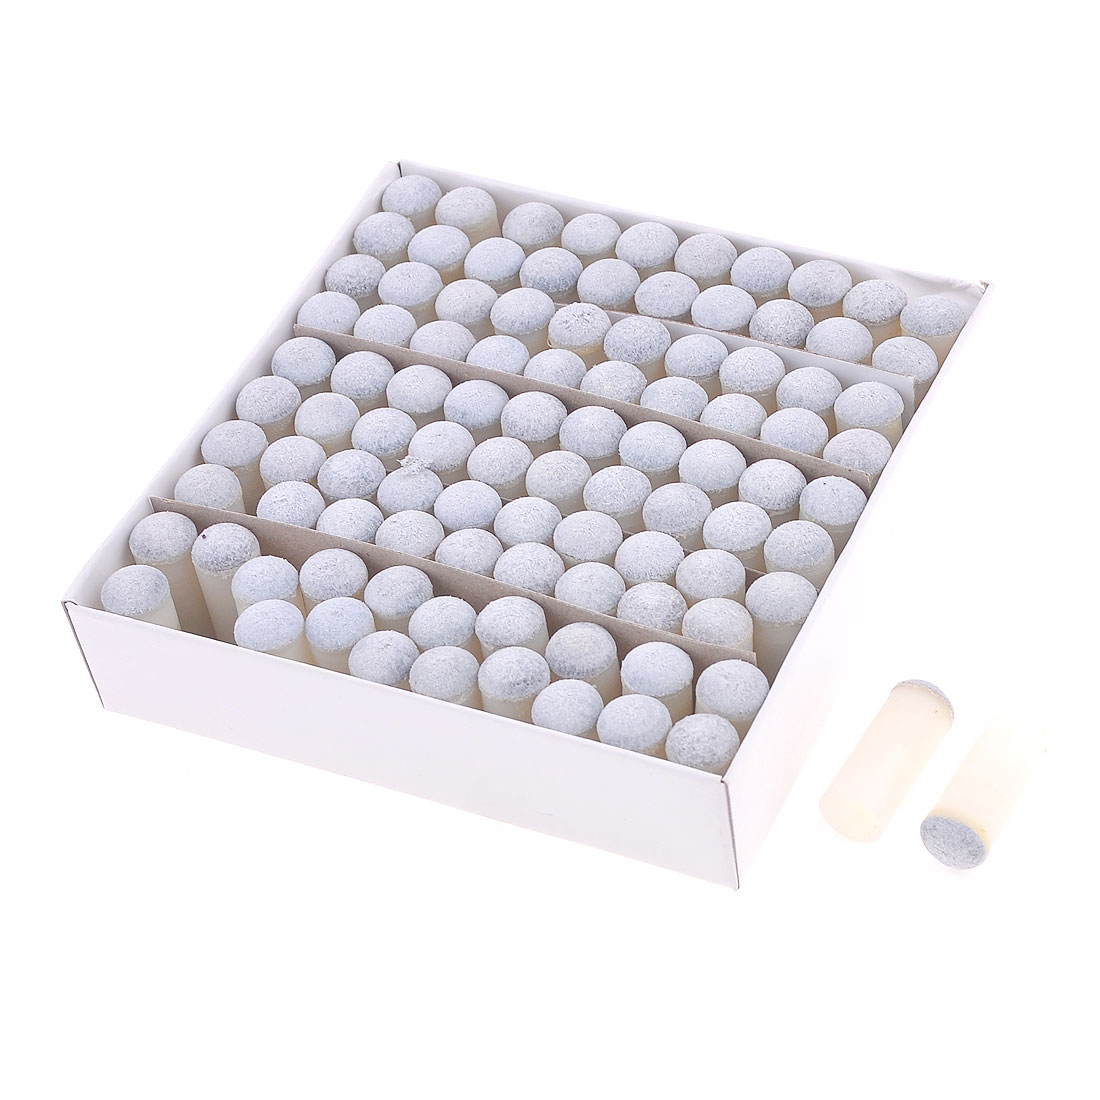 Gray White Plastic 10mm Dia Cylinder Design Billiards Stick Tip 100 Pcs